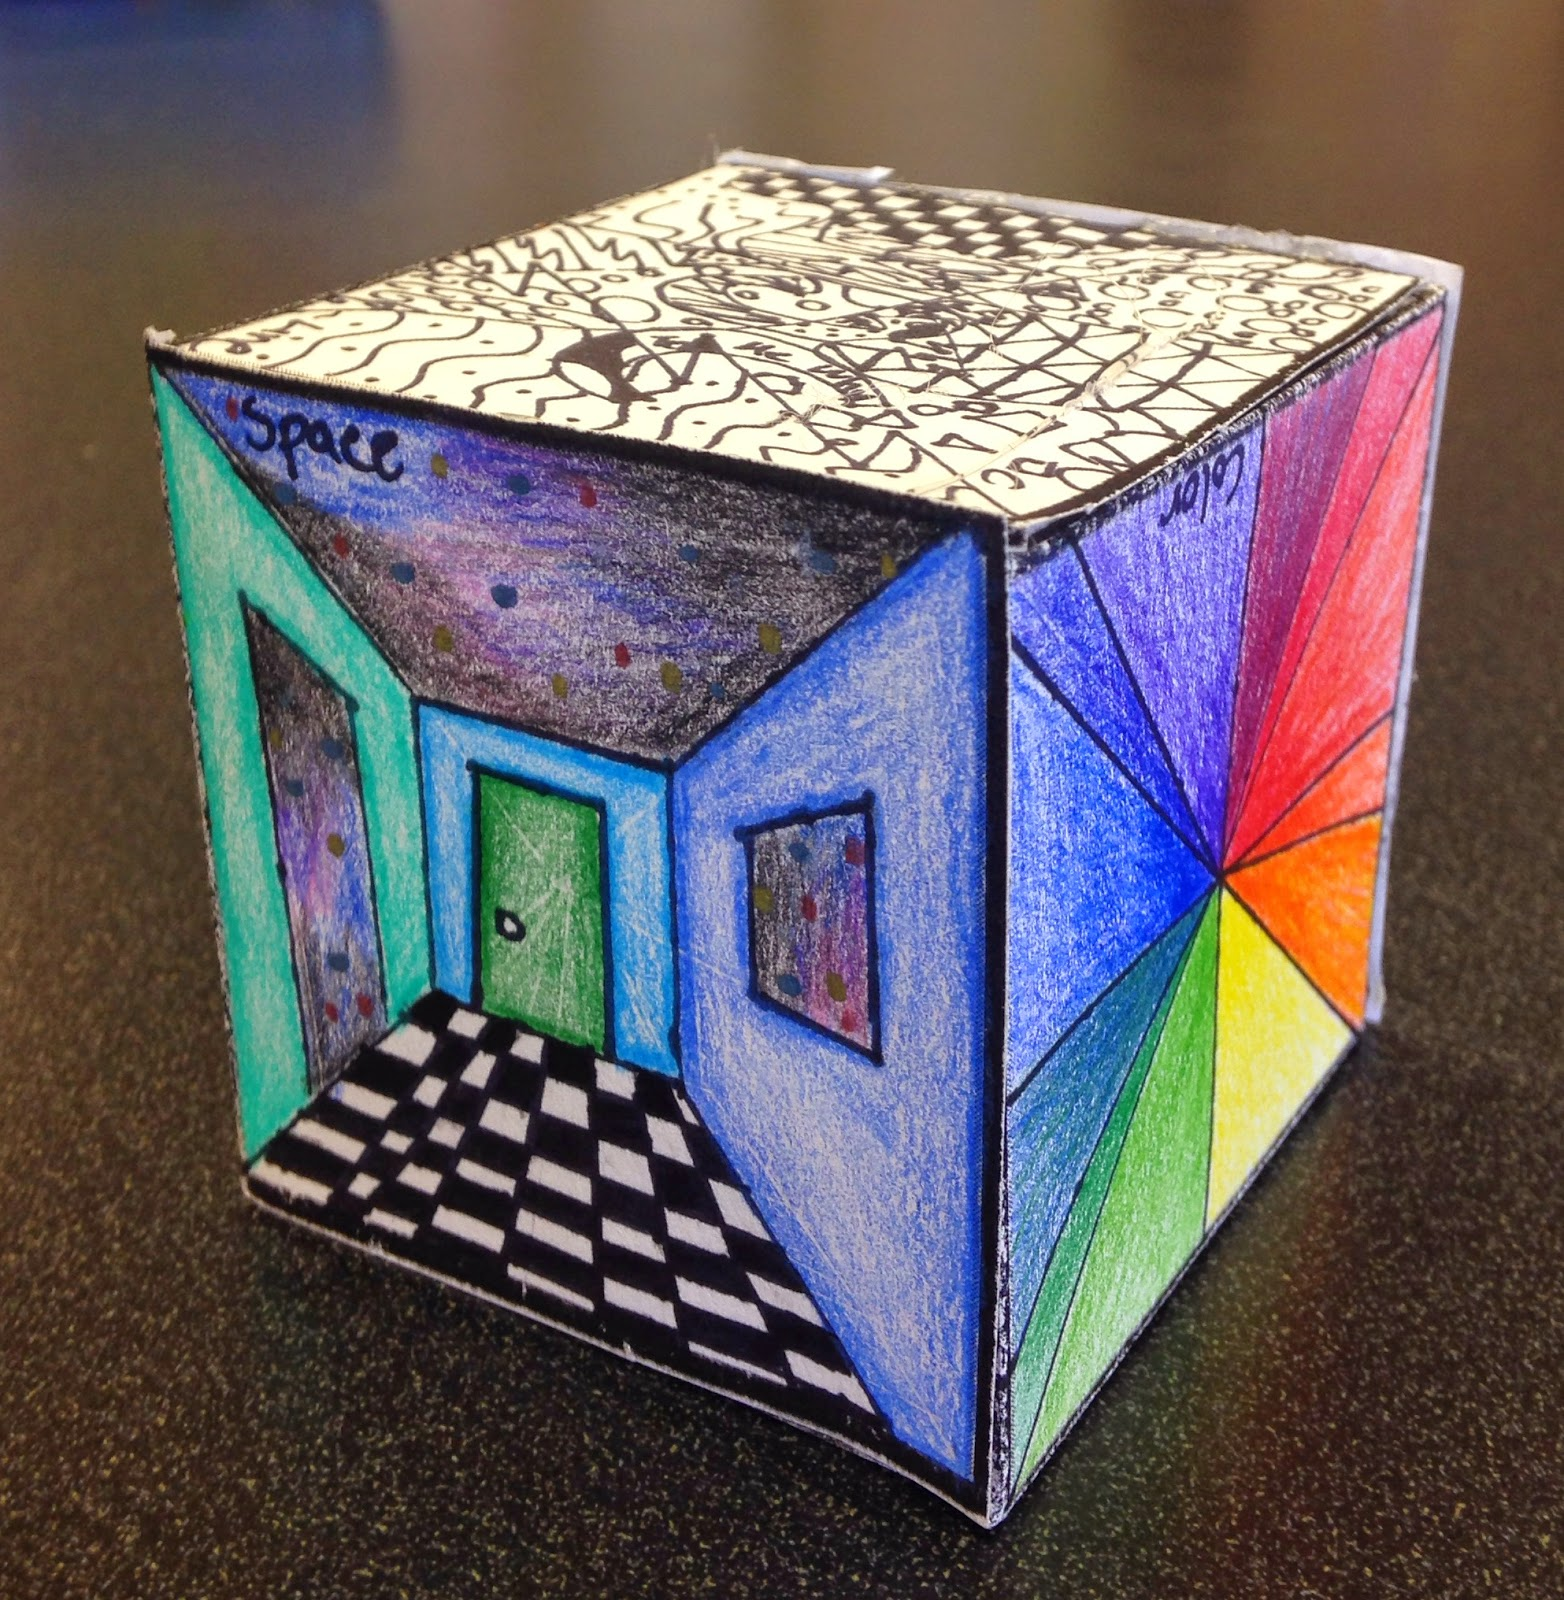 How Many Elements Of Art Are There : Sylvandale middle school art class elements cube